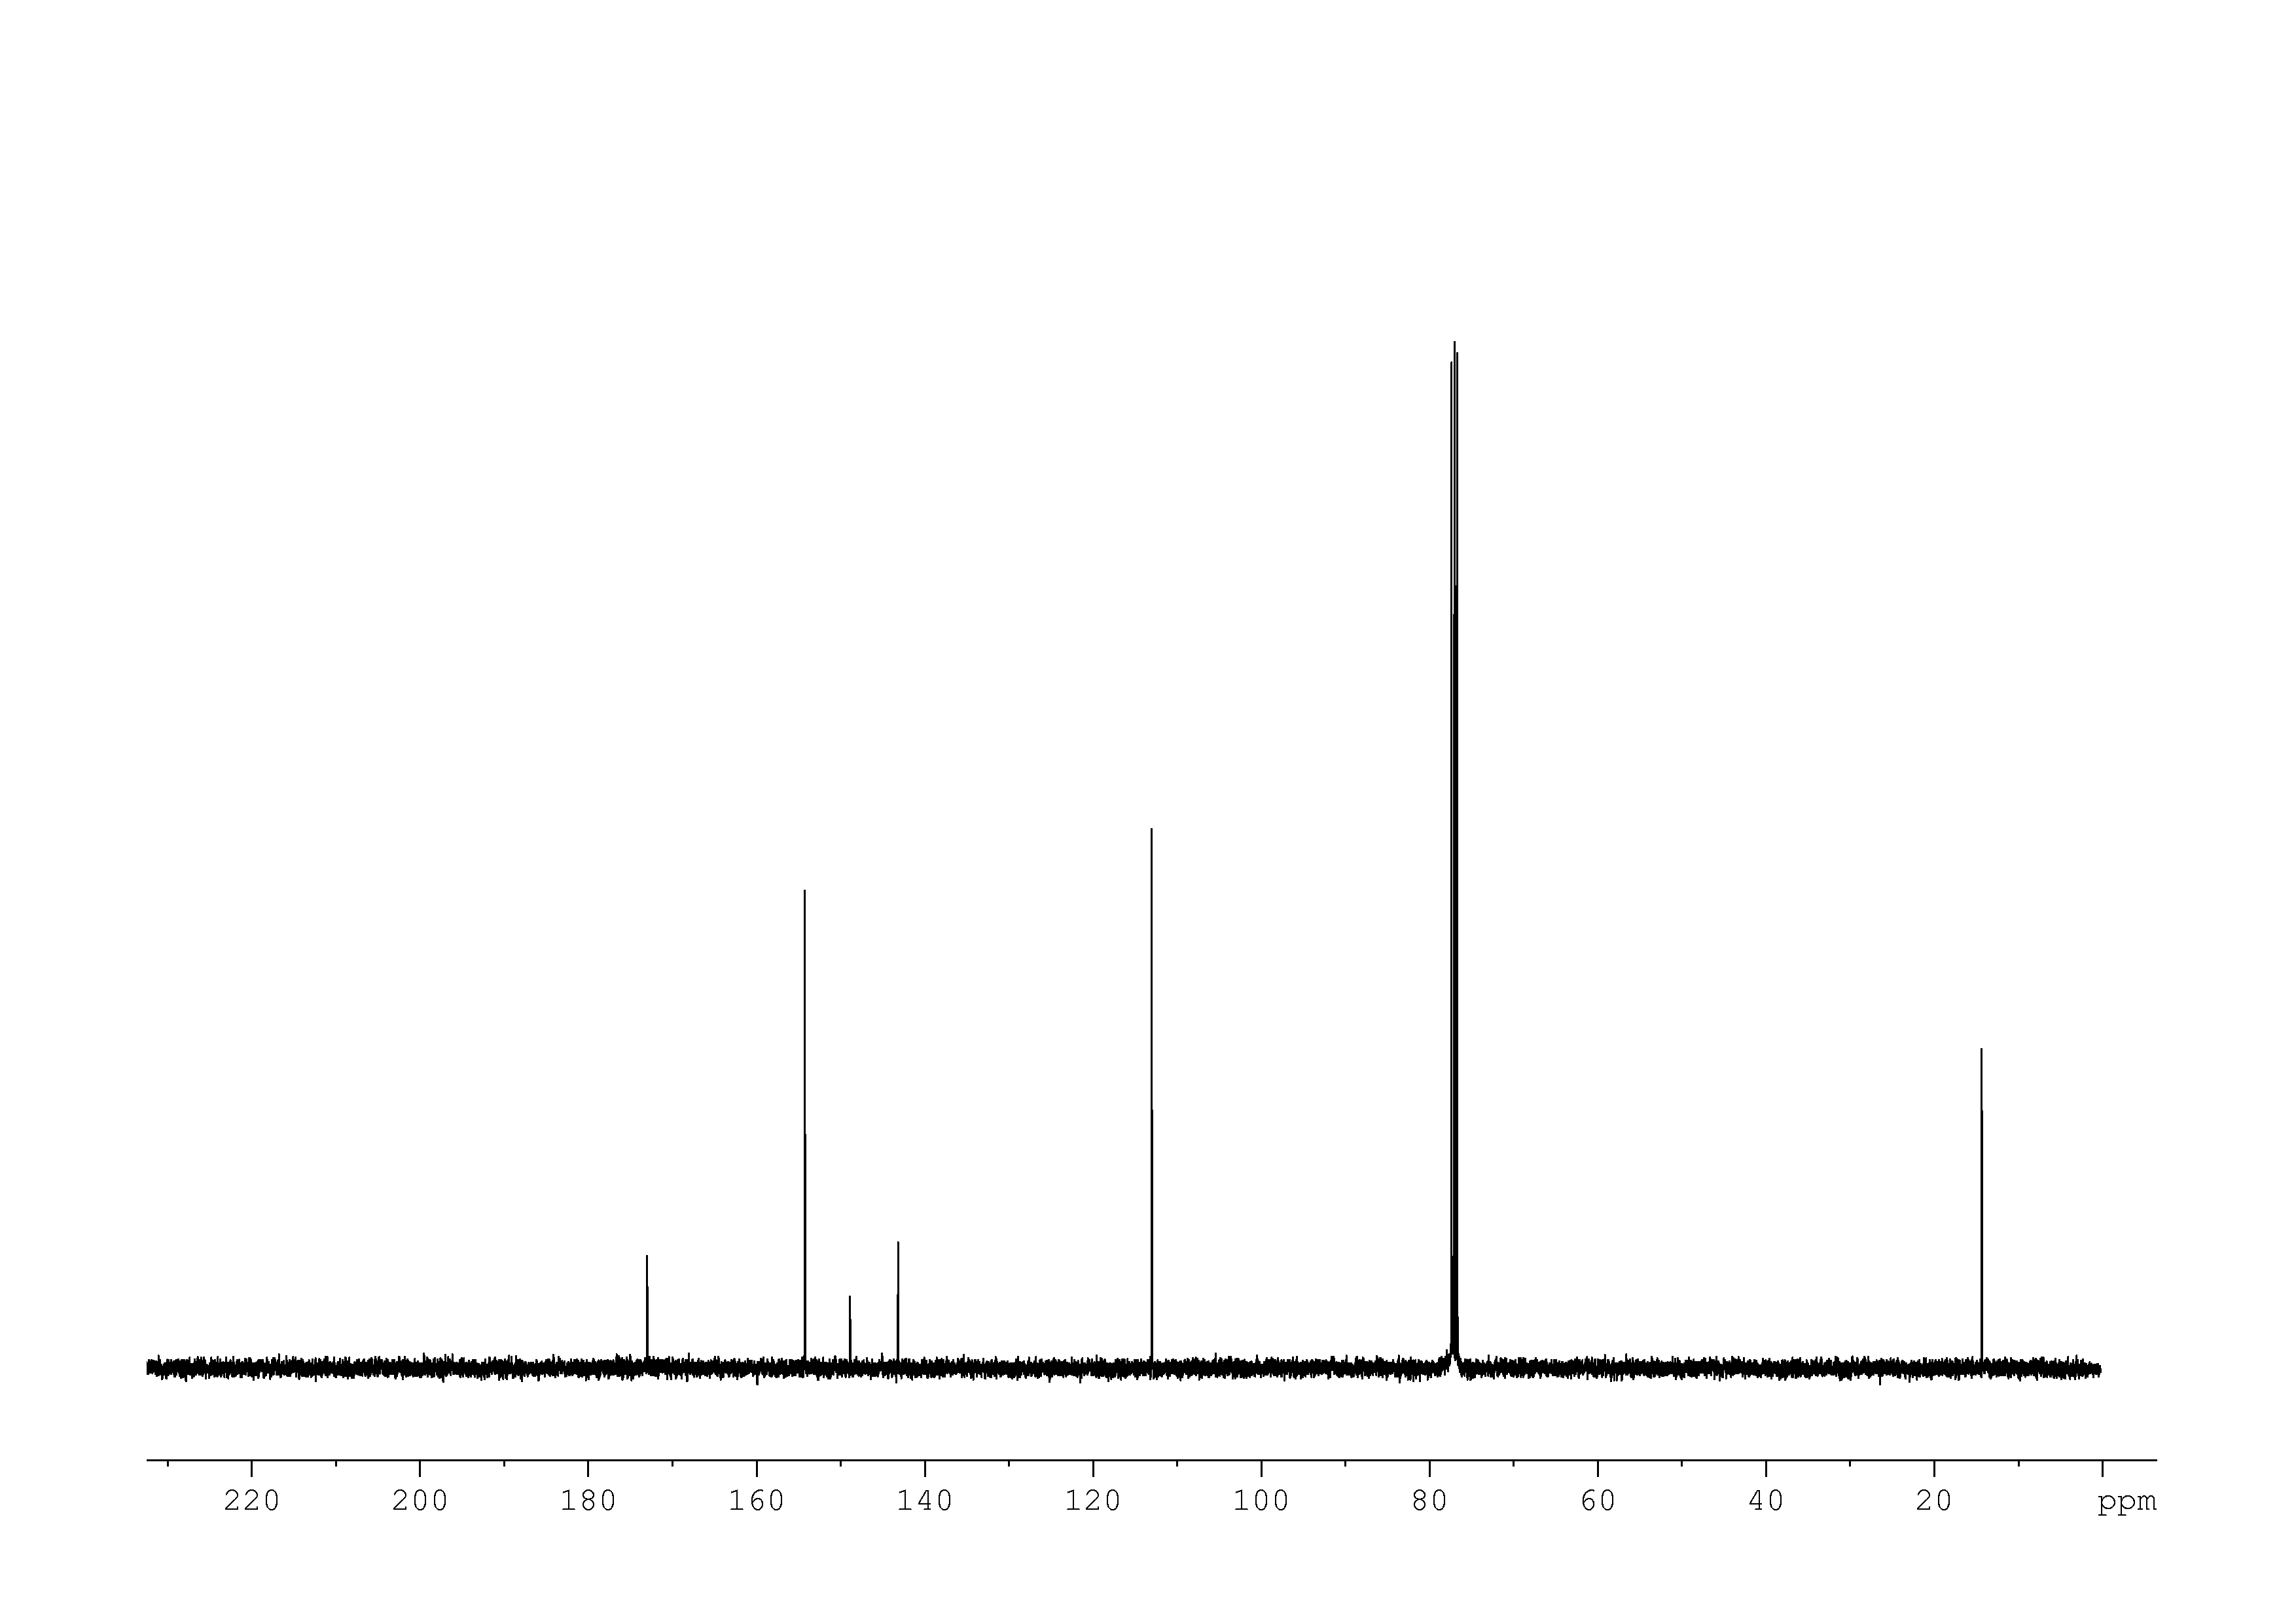 1D 13C, n/a spectrum for 3-hydroxy-2-methyl-4-pyrone